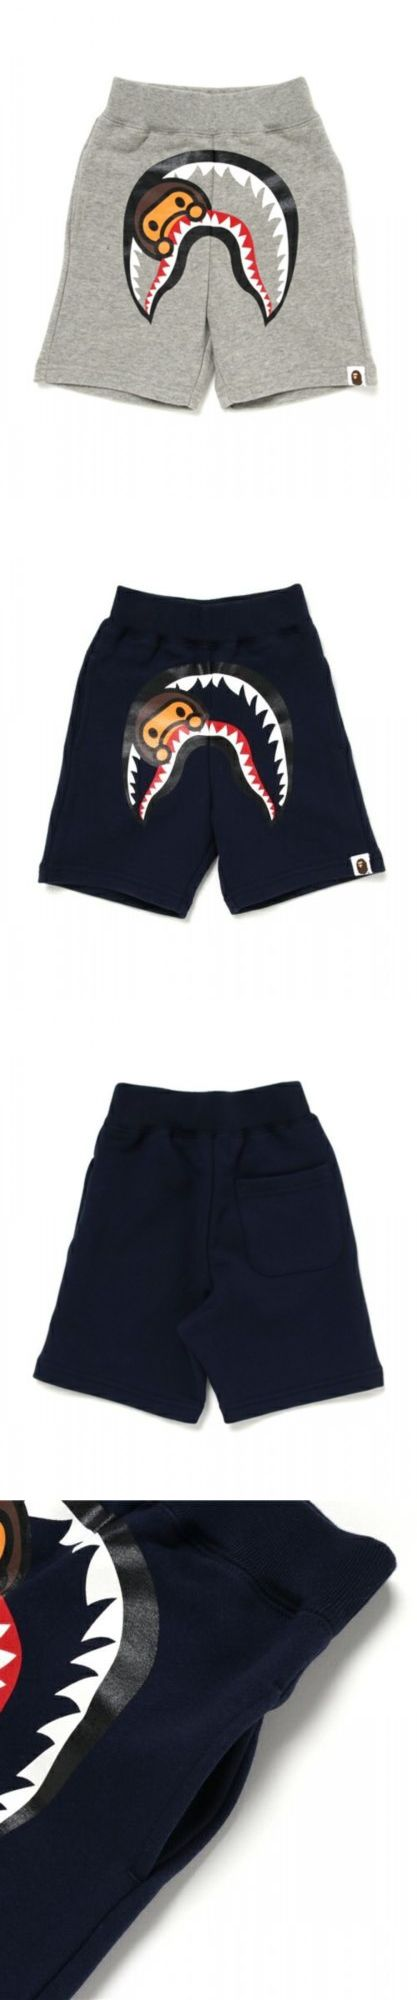 Shorts 175655: A Bathing Ape Milo Shark Shorts Bape Kids Graphic Cotton Short Pants From Japan -> BUY IT NOW ONLY: $129 on eBay!